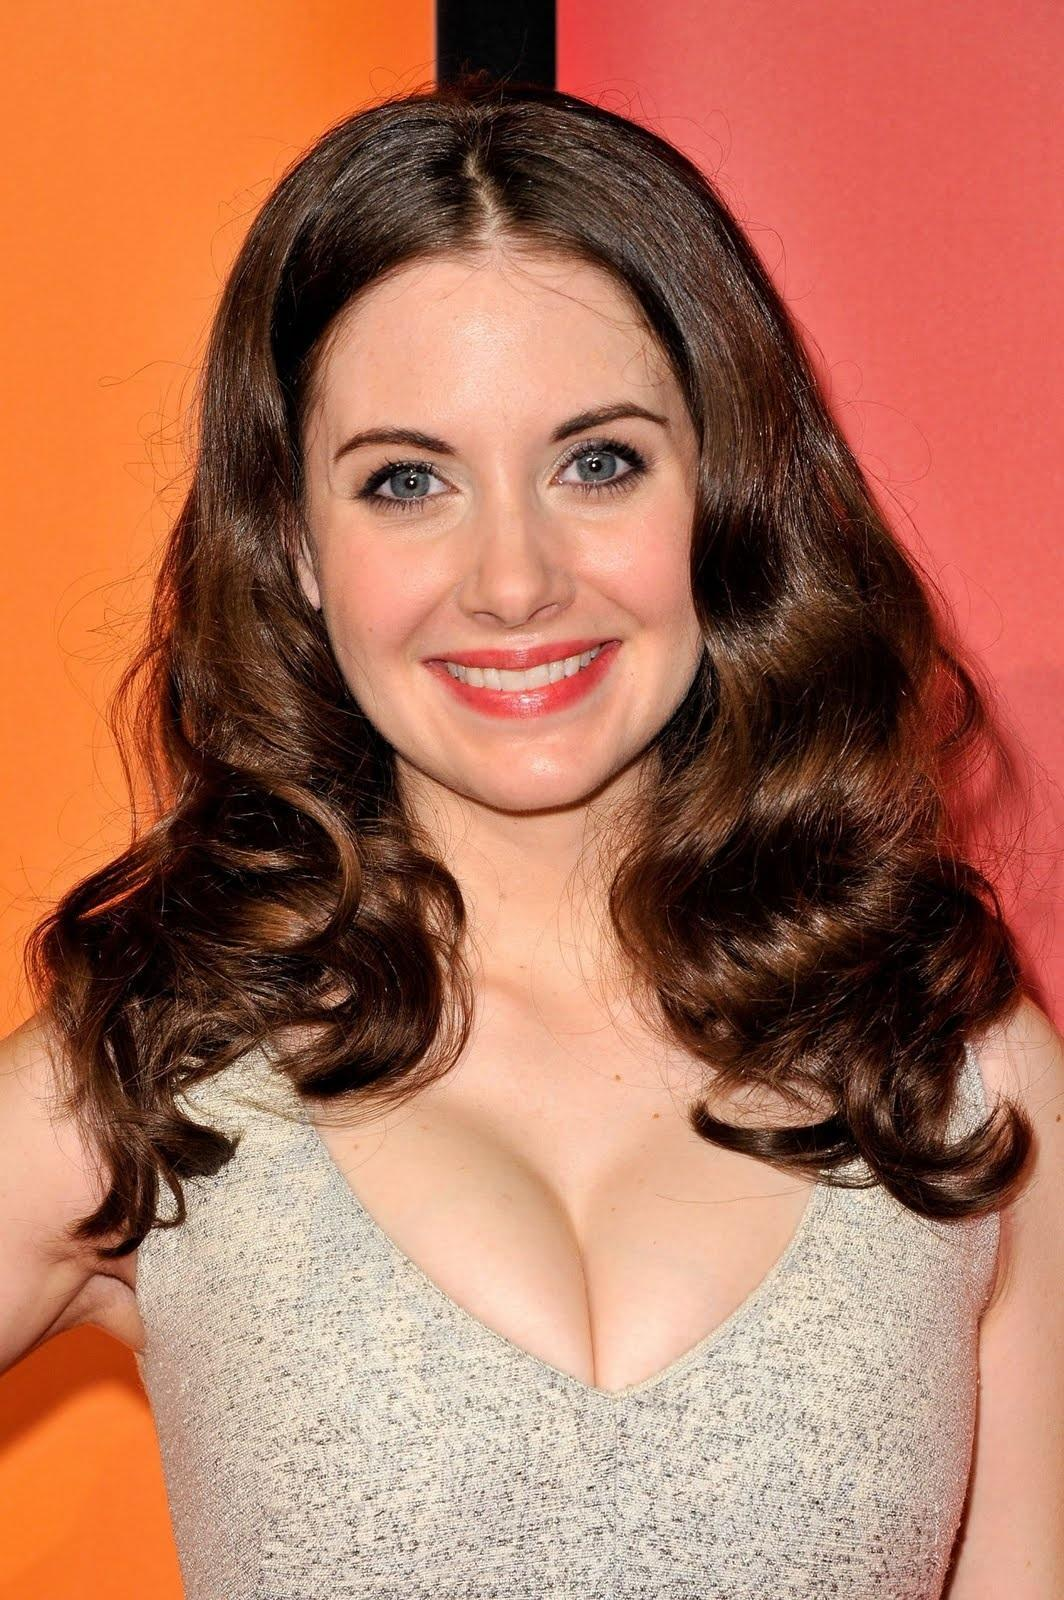 Pictures Alison Brie nude (33 foto and video), Sexy, Leaked, Selfie, bra 2019